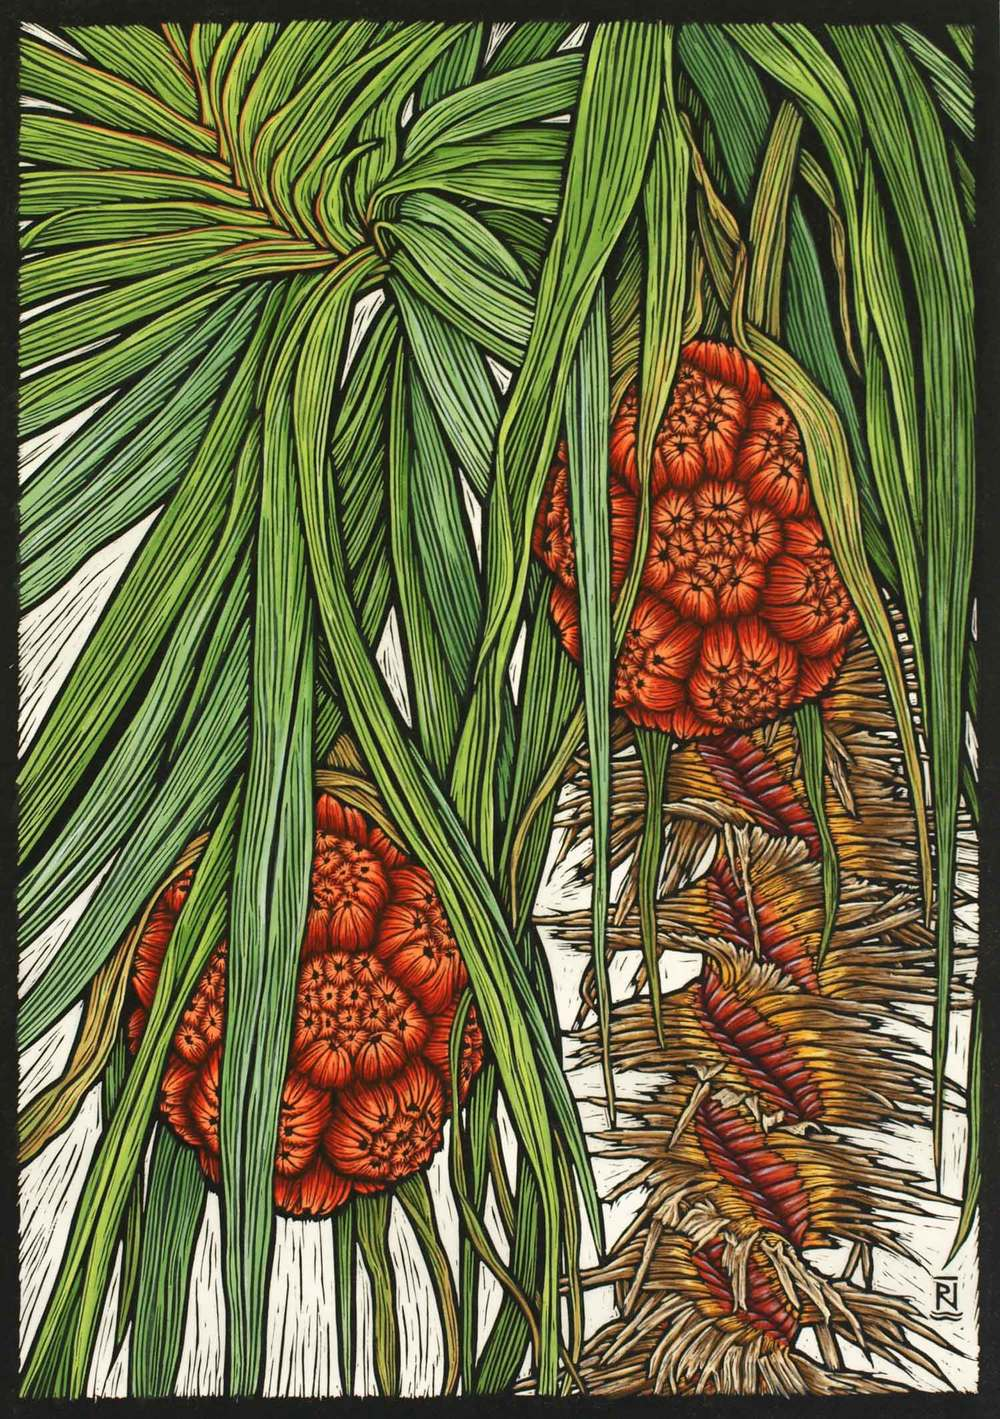 KAKADU PANDANUS  57 X 40.5 CM EDITION OF 50  HAND COLOURED LINOCUT ON HANDMADE JAPANESE PAPER  $1,350